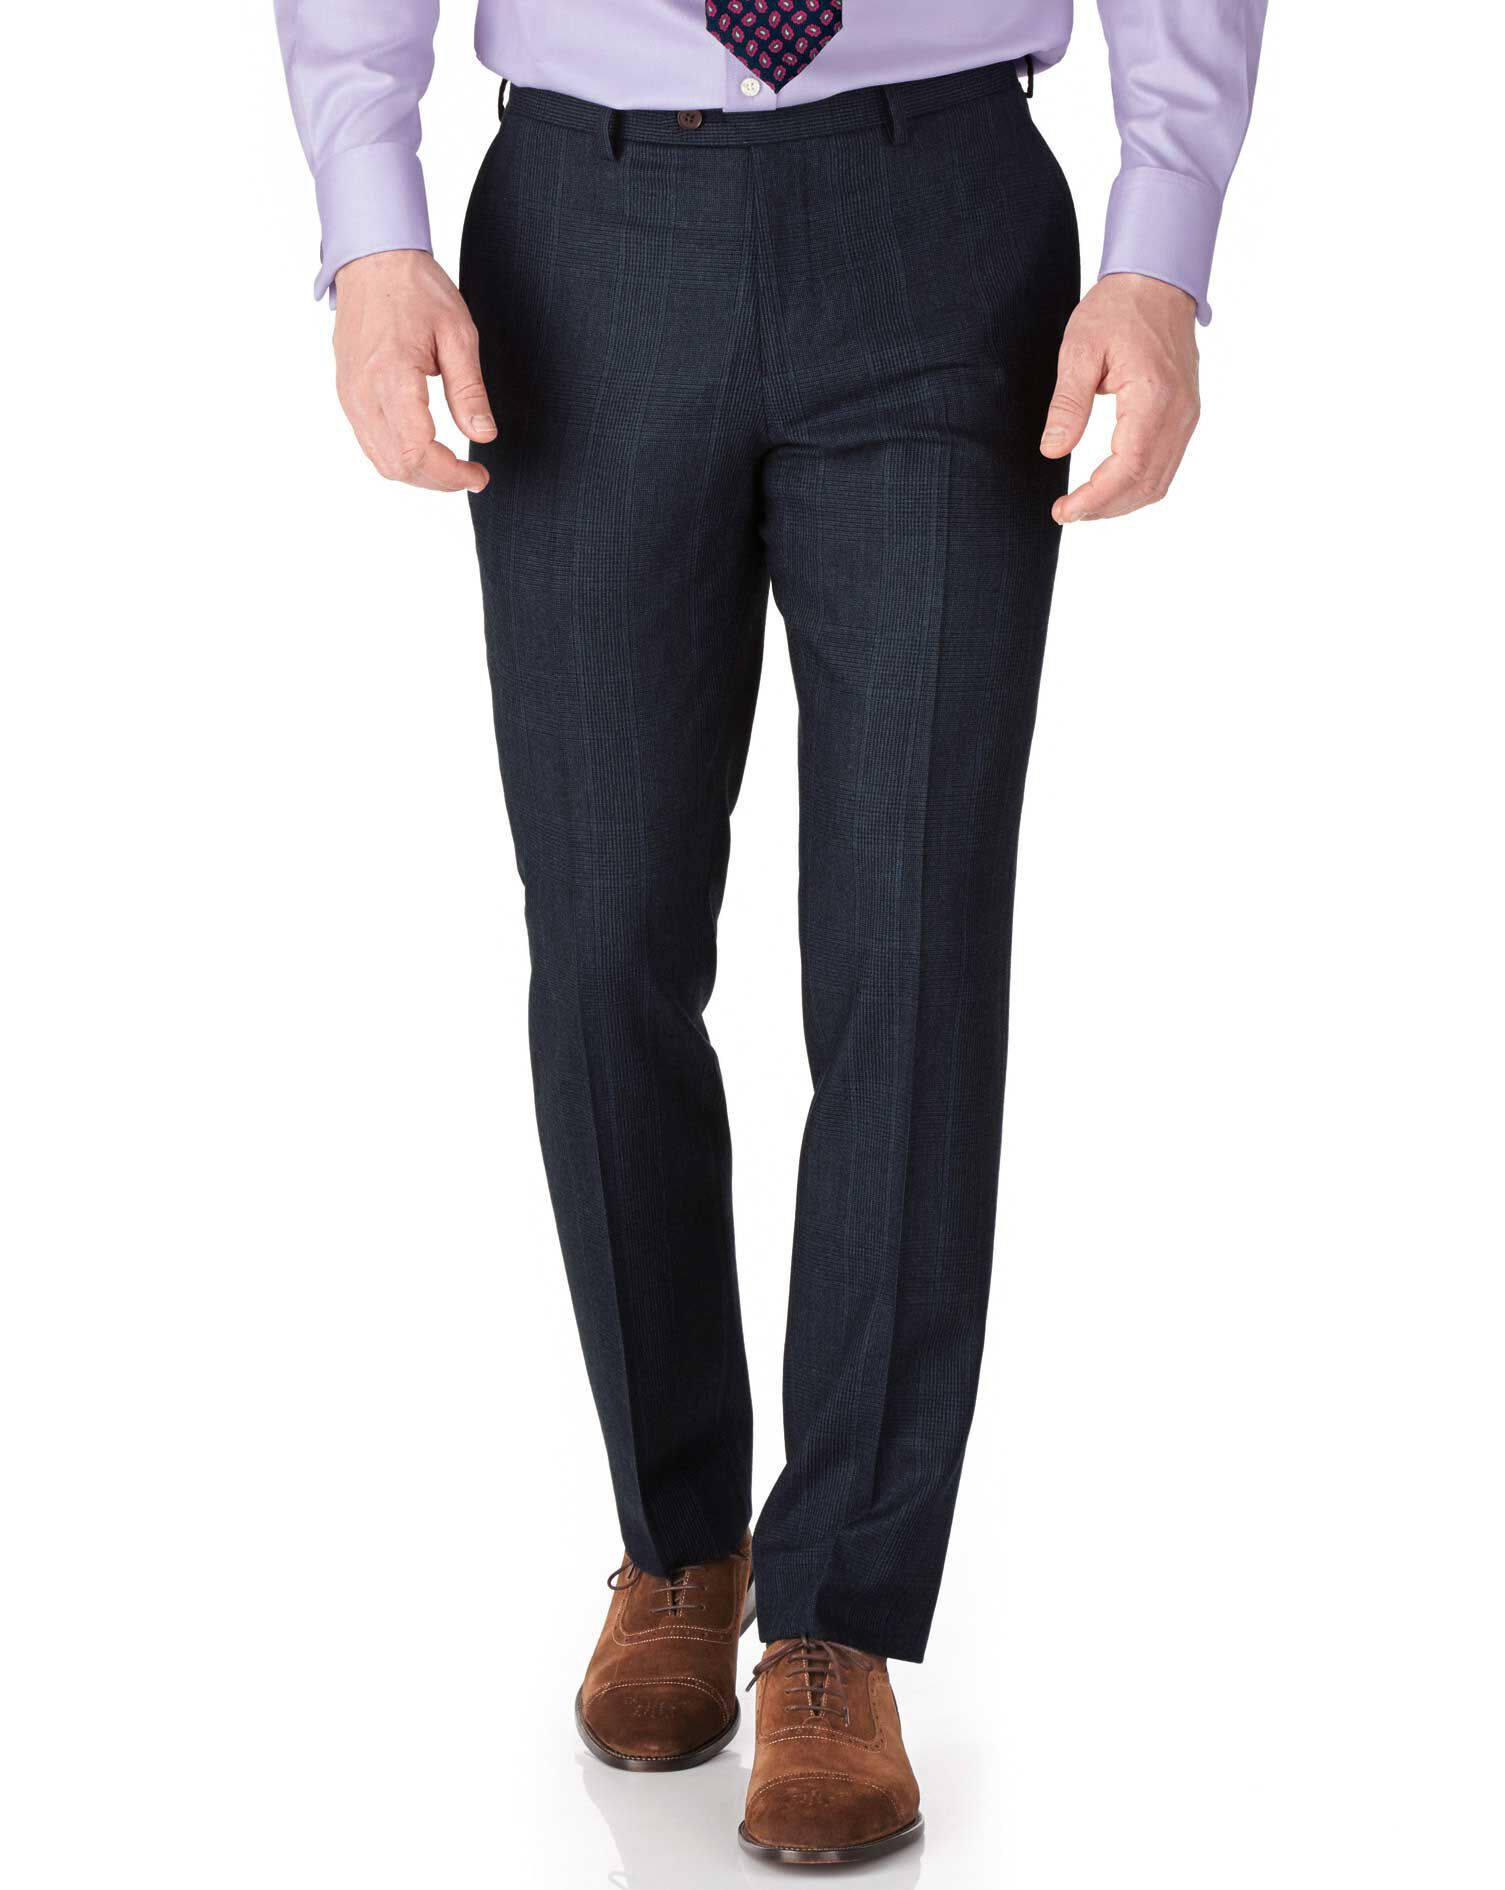 Navy Check Slim Fit Saxony Business Suit Trousers Size W38 L38 by Charles Tyrwhitt